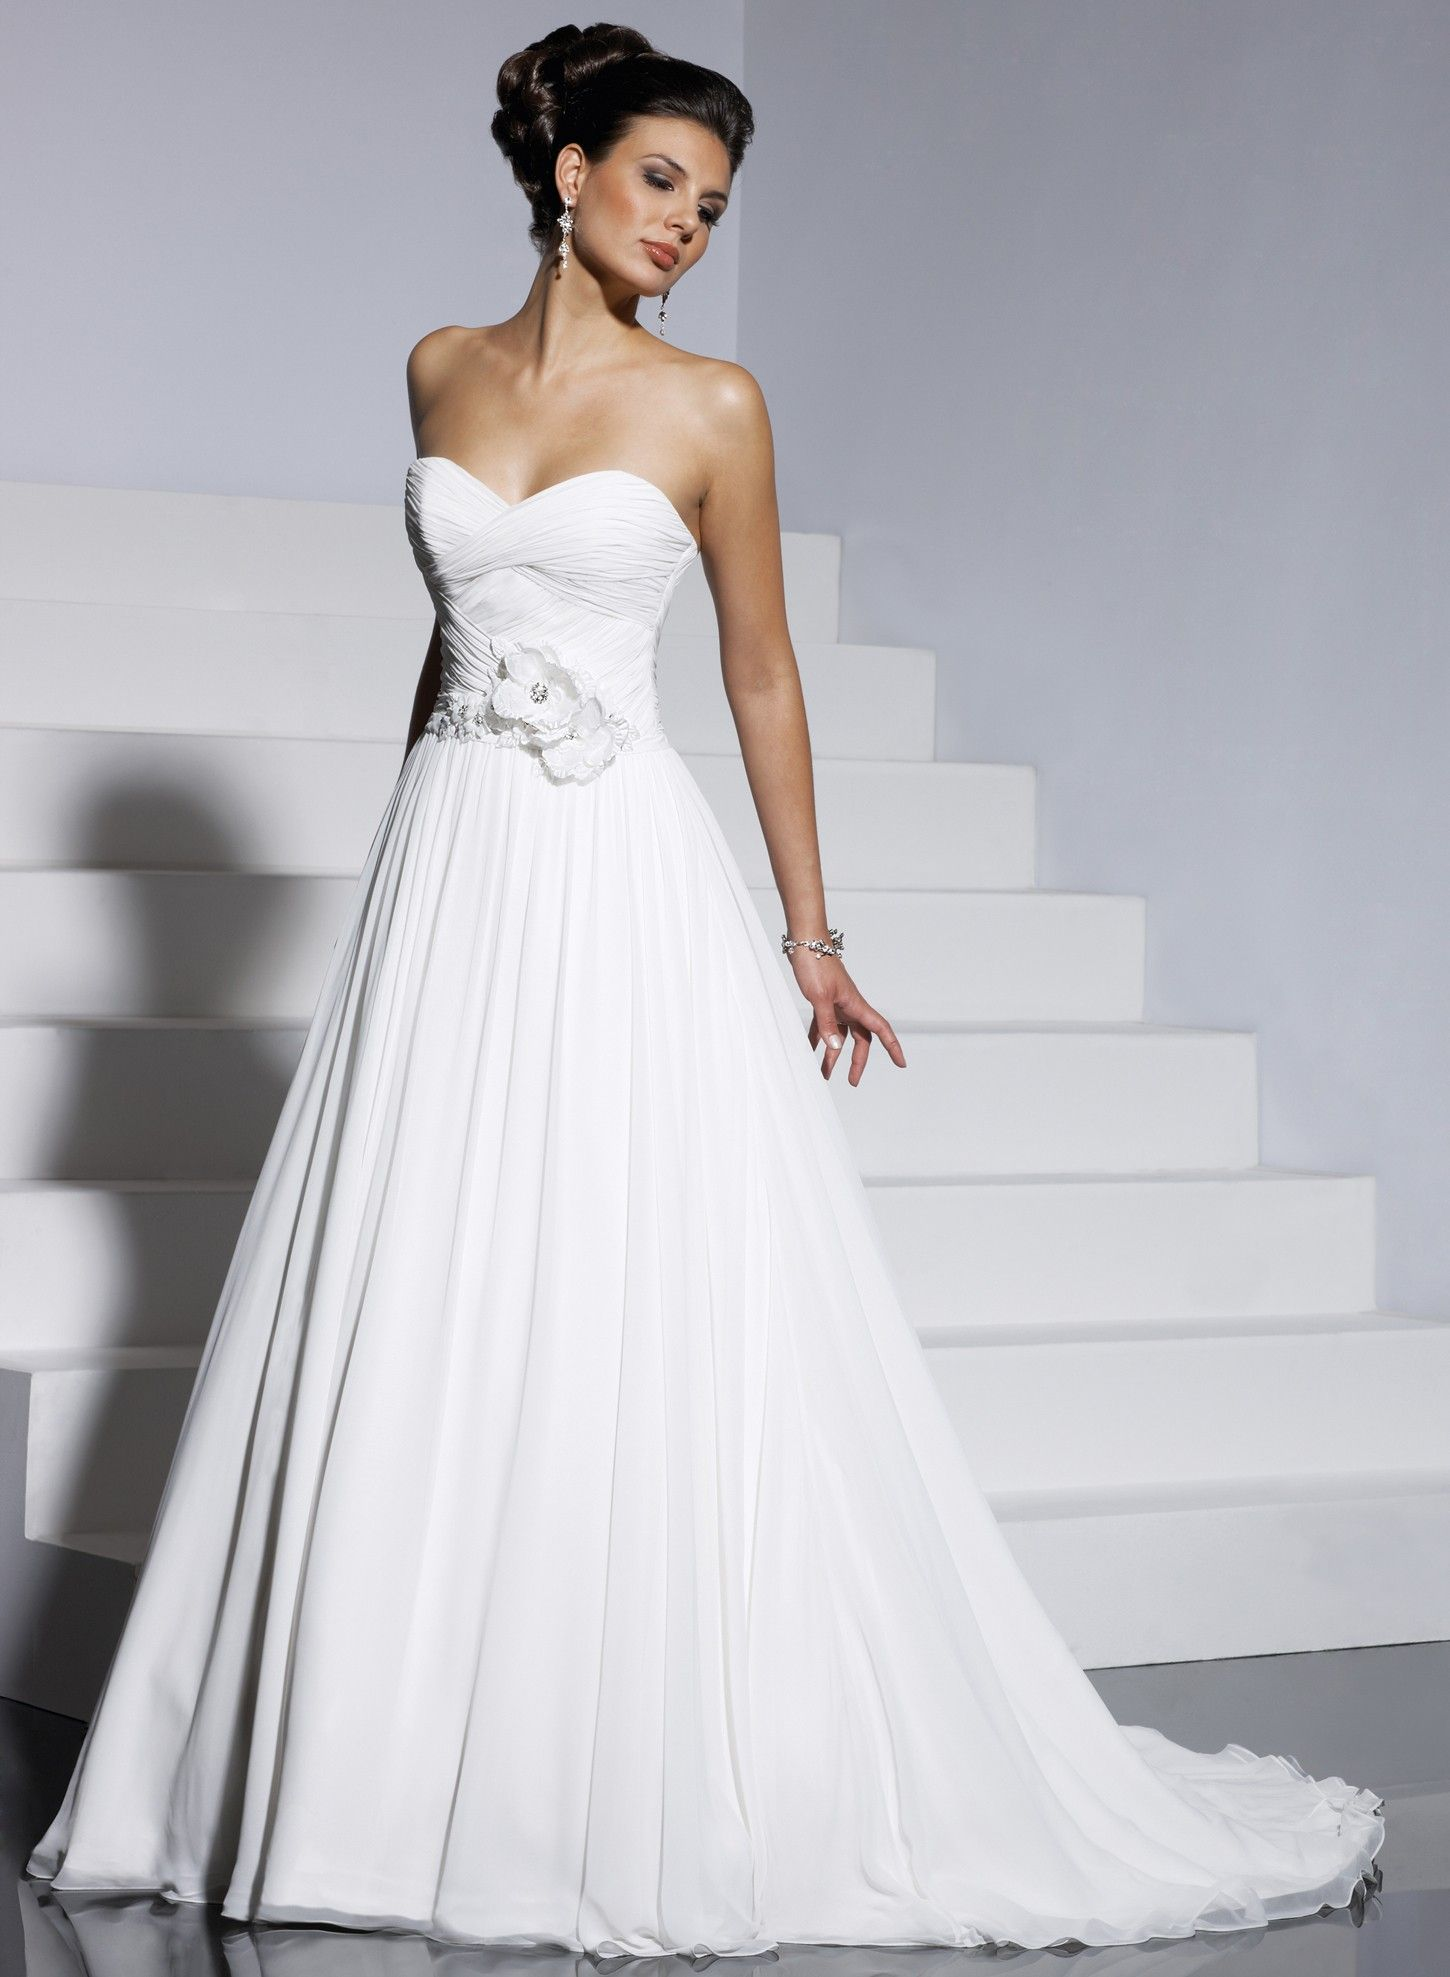 Wedding dress for your body  weddinghivegh tipsonchoosingyourweddinggownbased